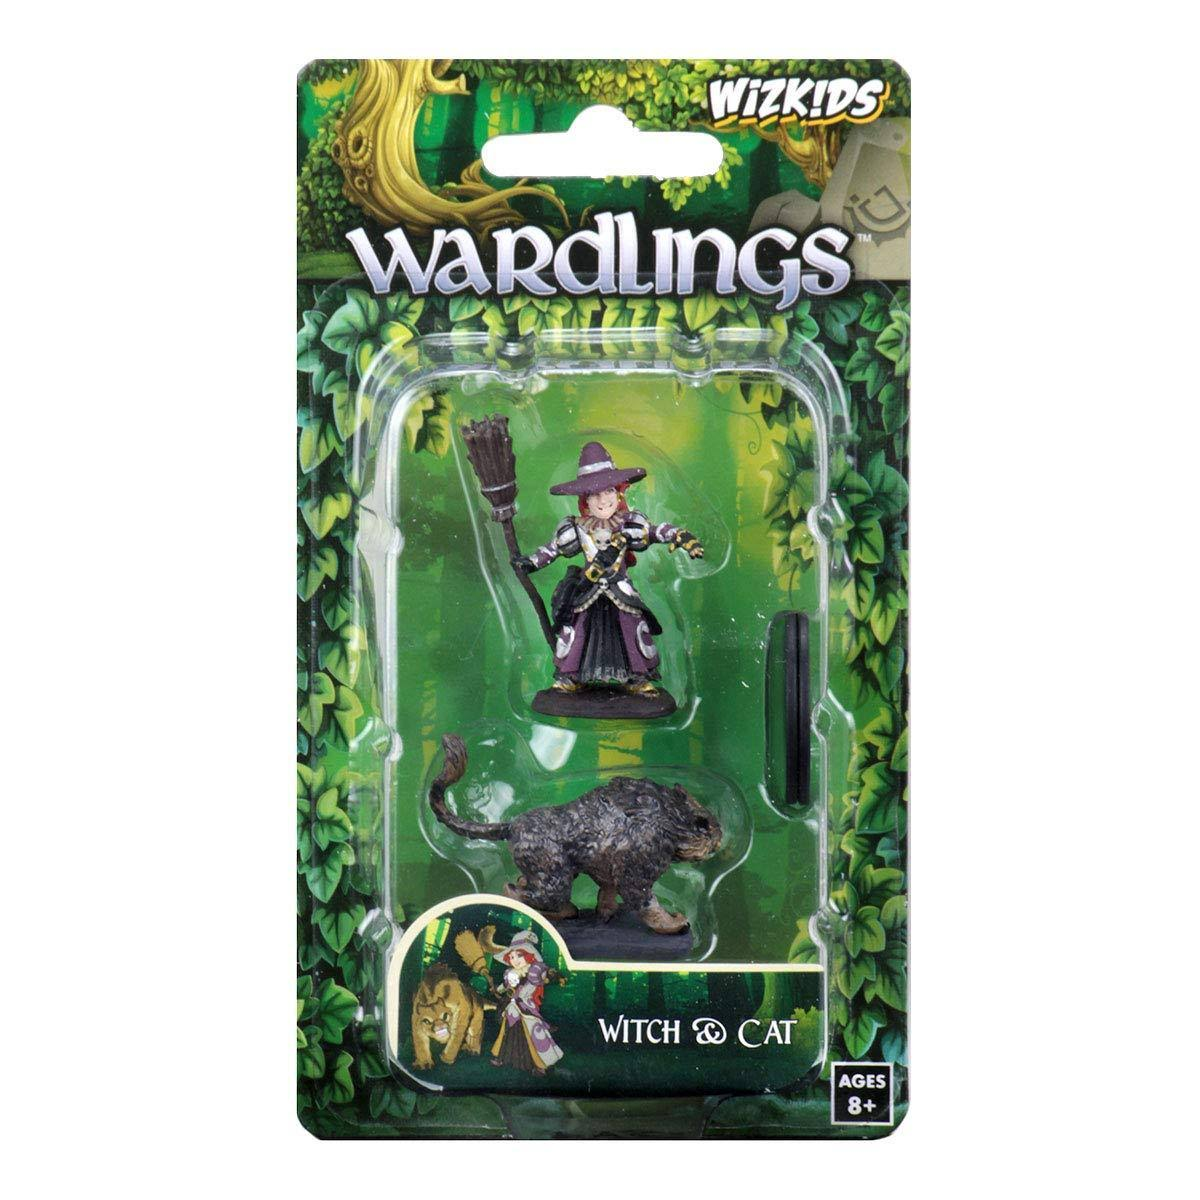 Wardlings Girl Witch & Witch's Cat WizKids Miniature